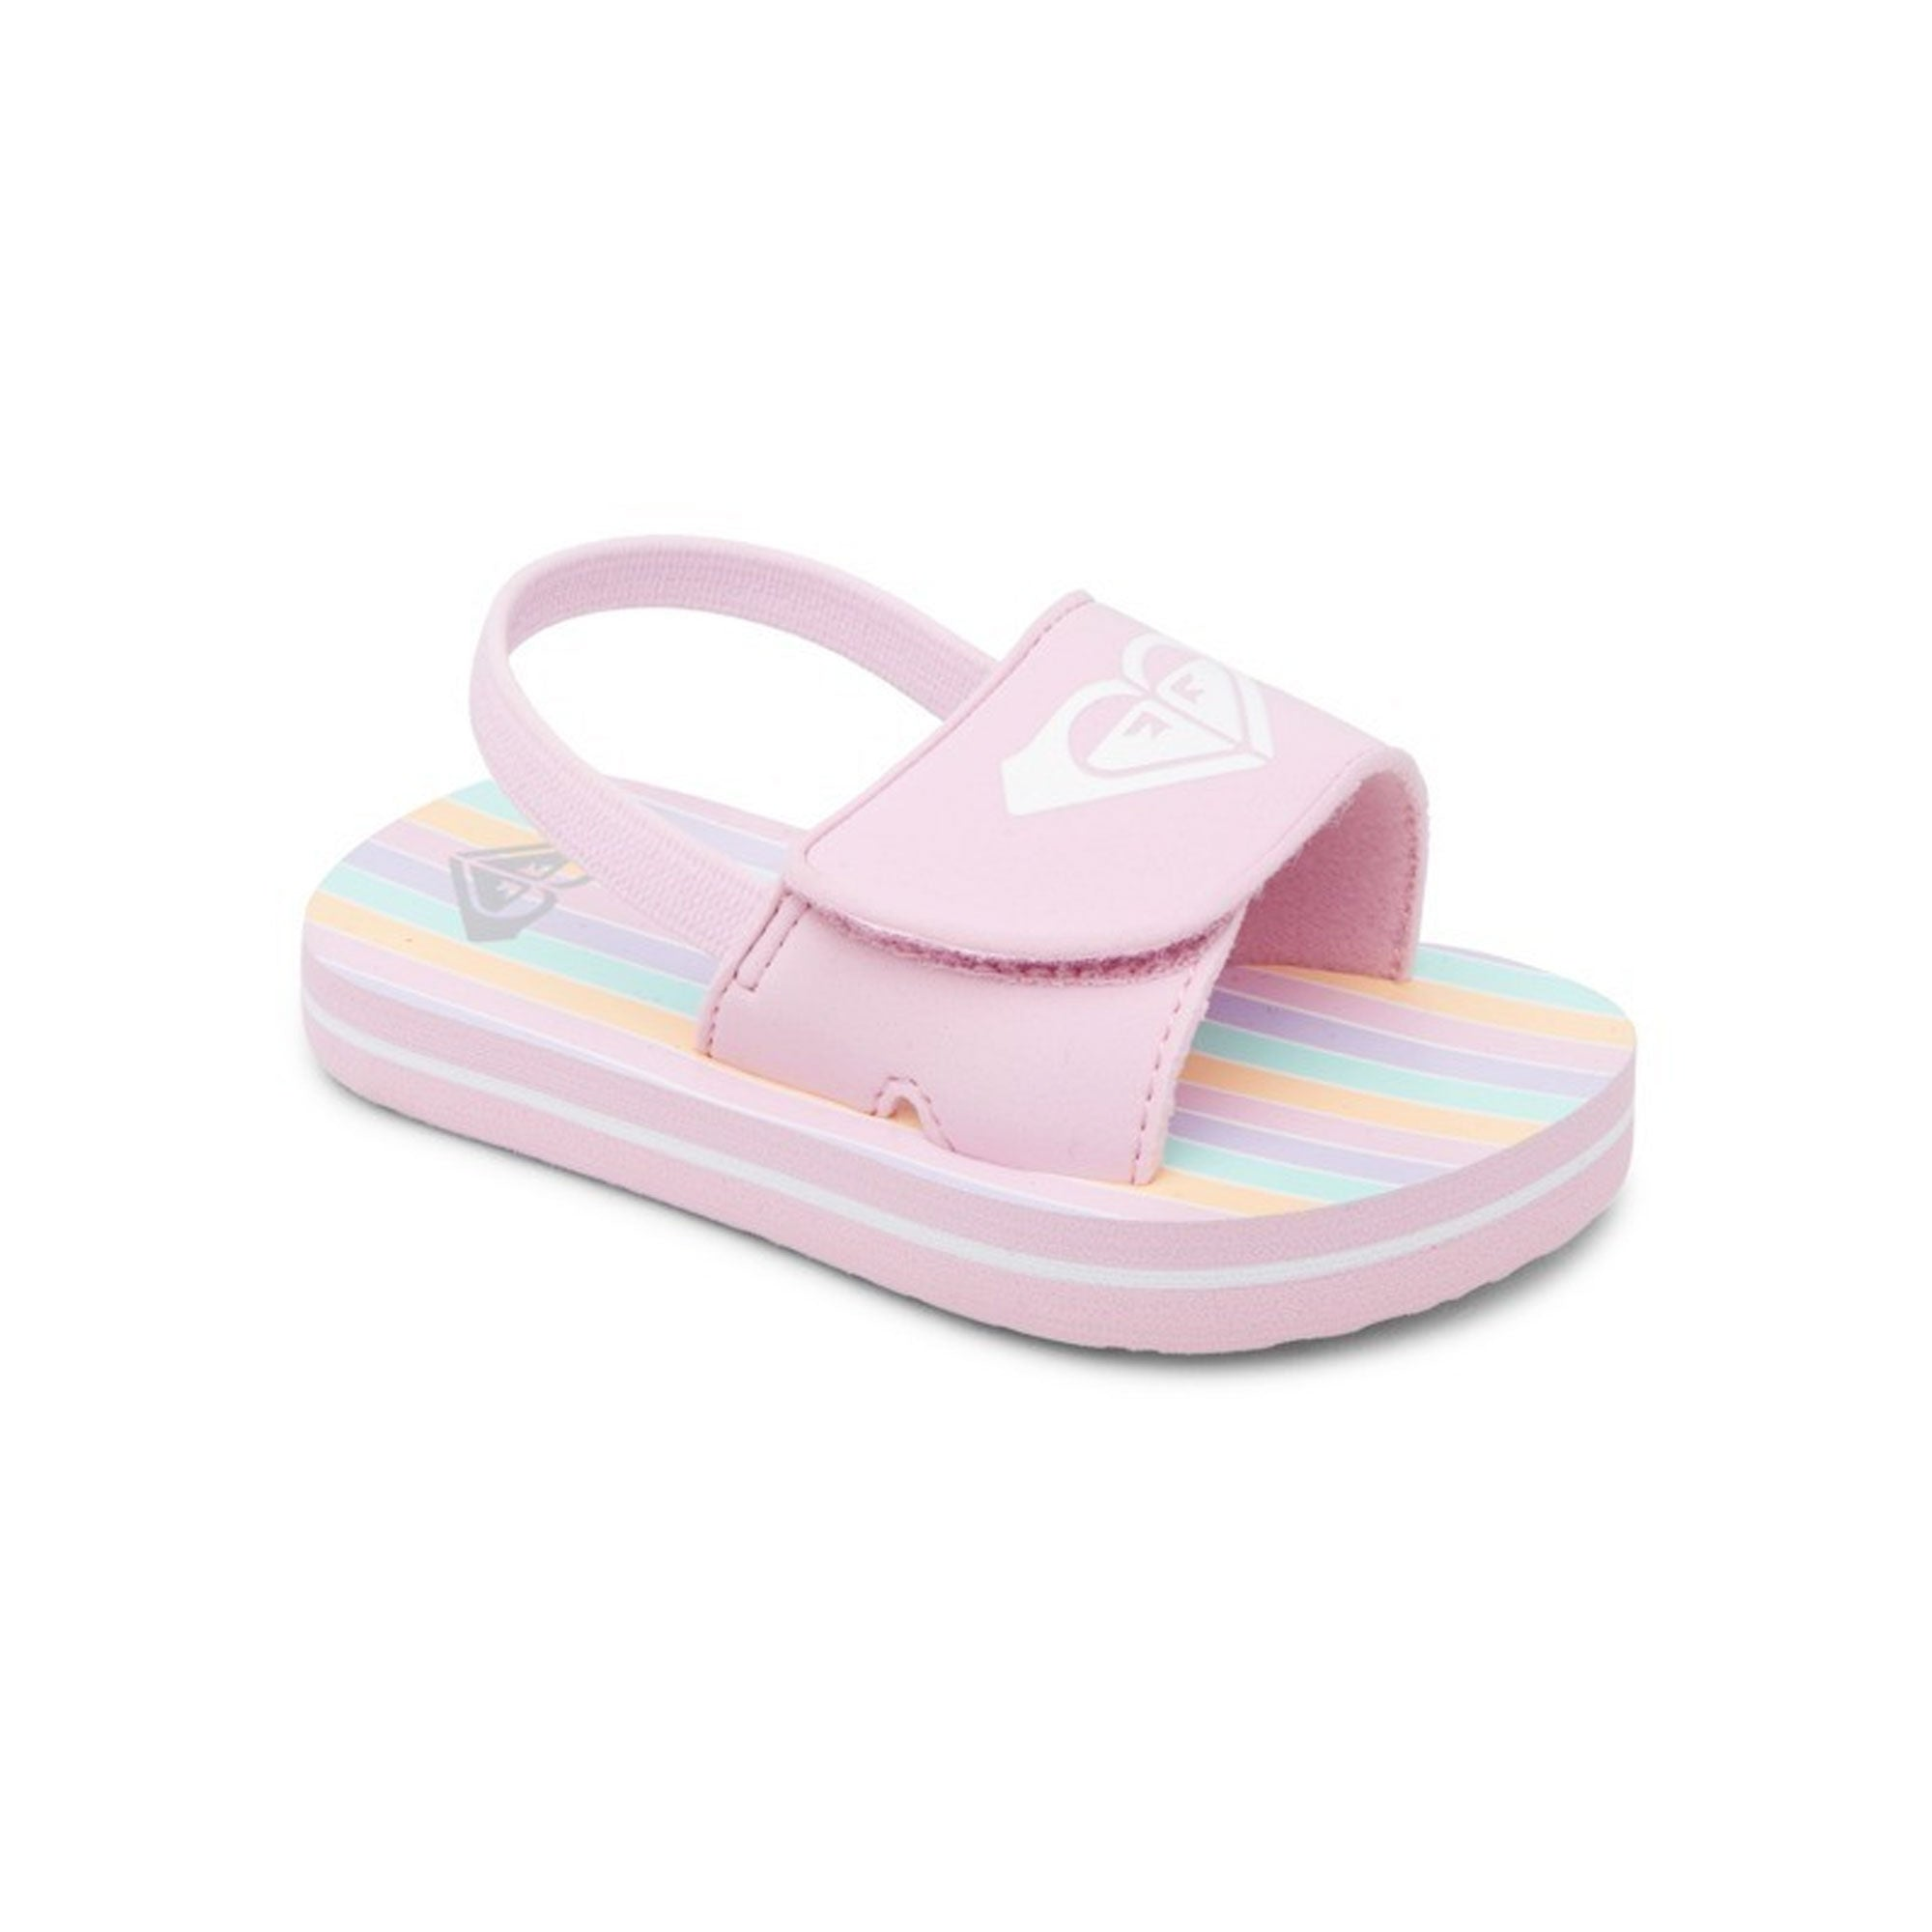 Roxy Finn Toddler Sandals